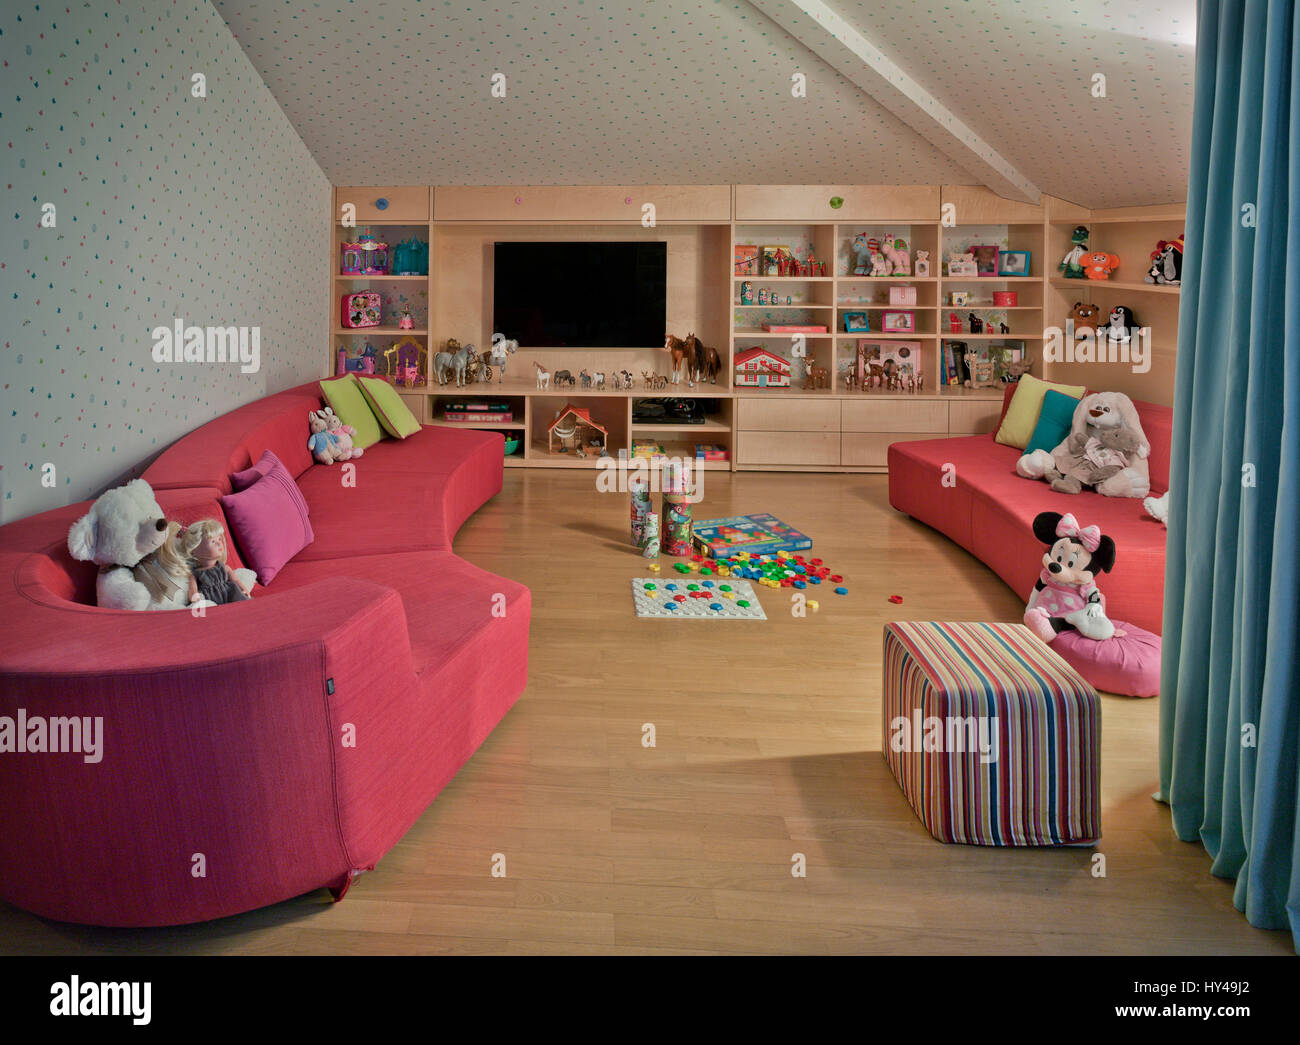 Interior design in the children's room. shelves with toys. Domestic comfortable life. Stock Photo